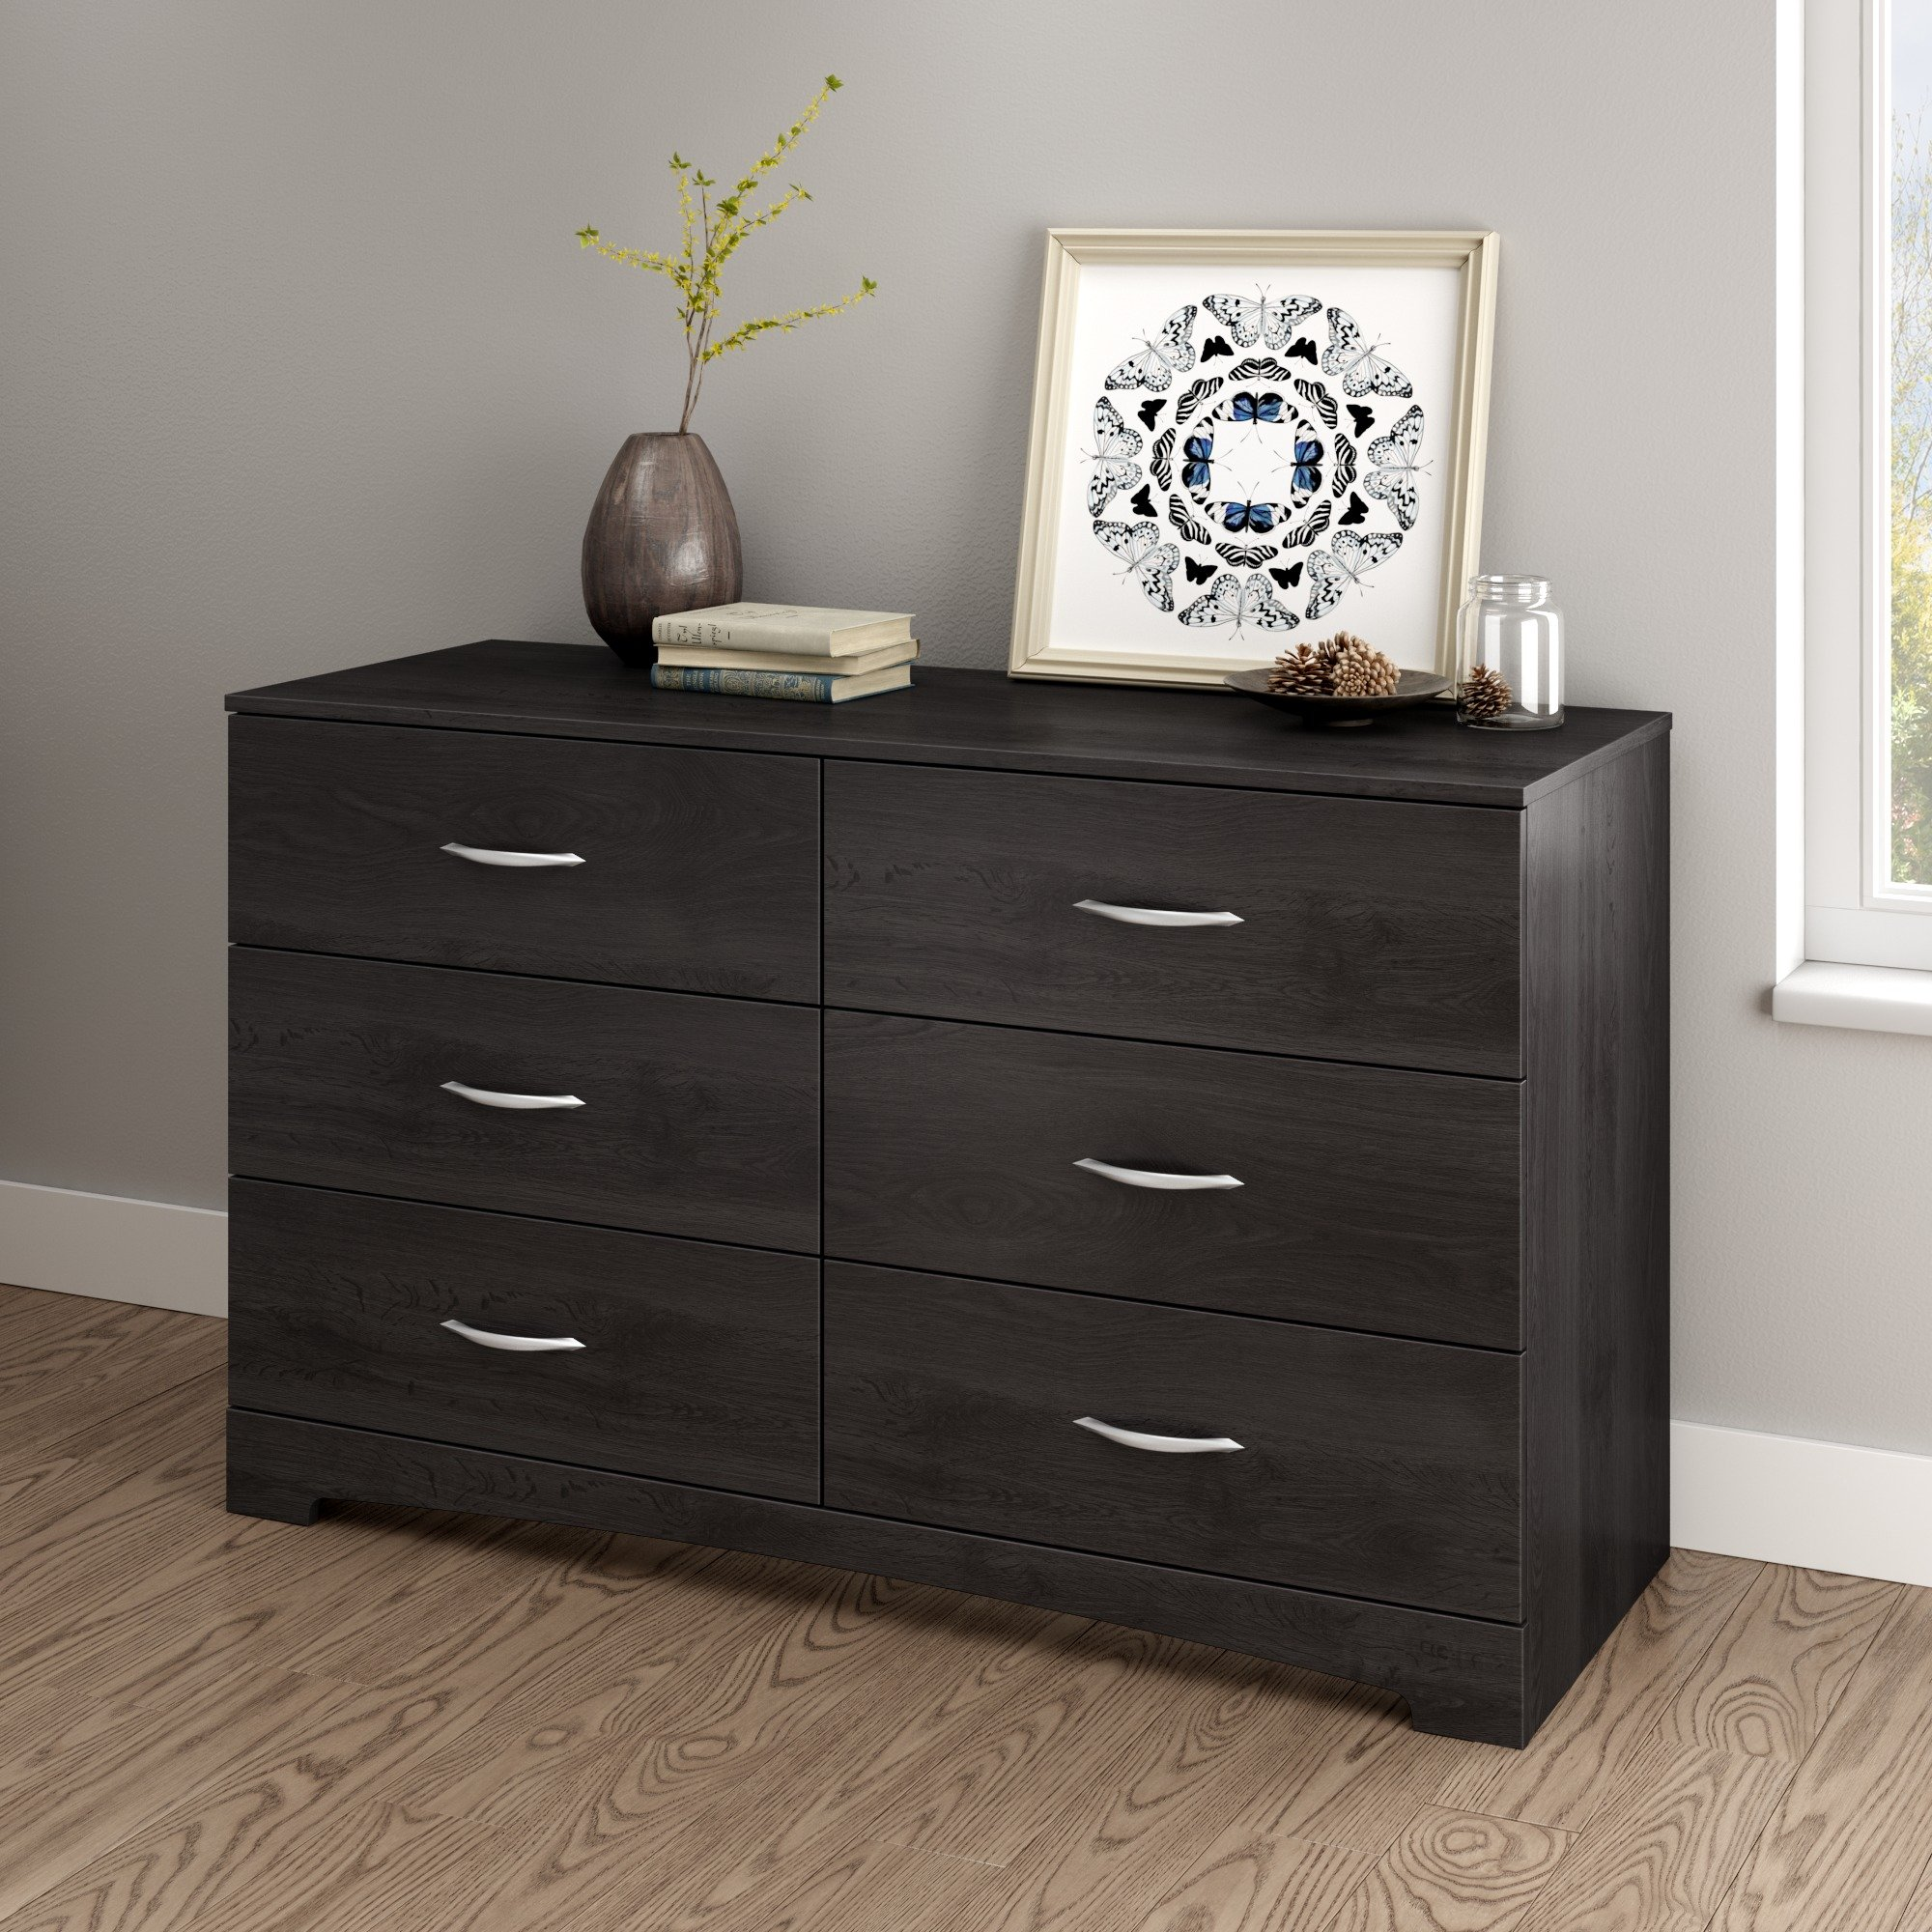 South Shore Step One 6-Drawer Double Dresser, Gray Oak with Matte Nickel Handles by South Shore